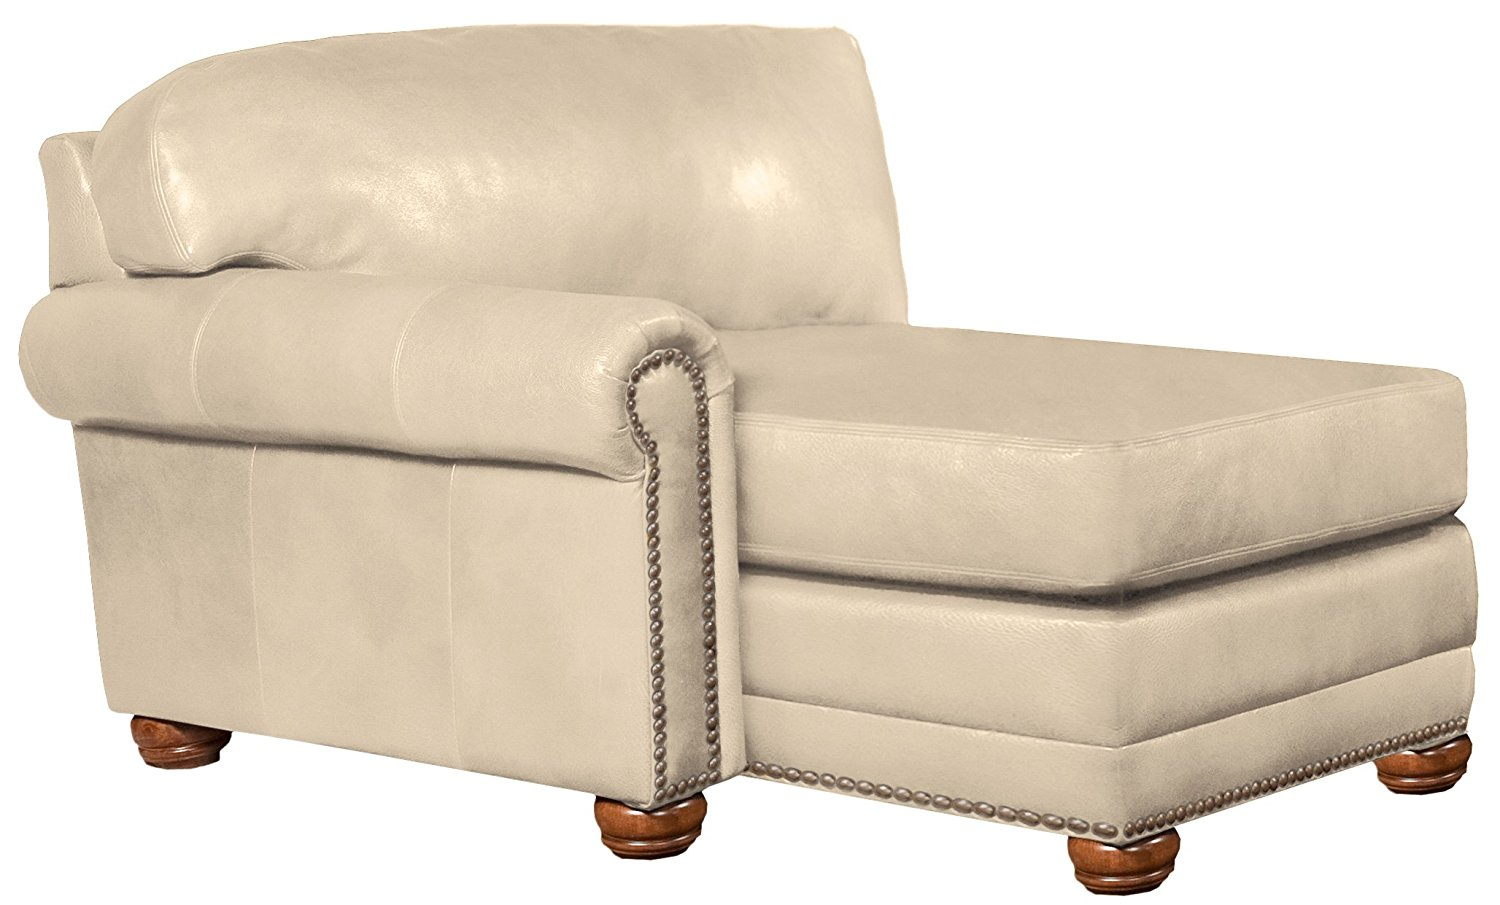 Omnia Leather Dominion Left Arm Chaise in Leather, with Nail Head, Softstations White Winter